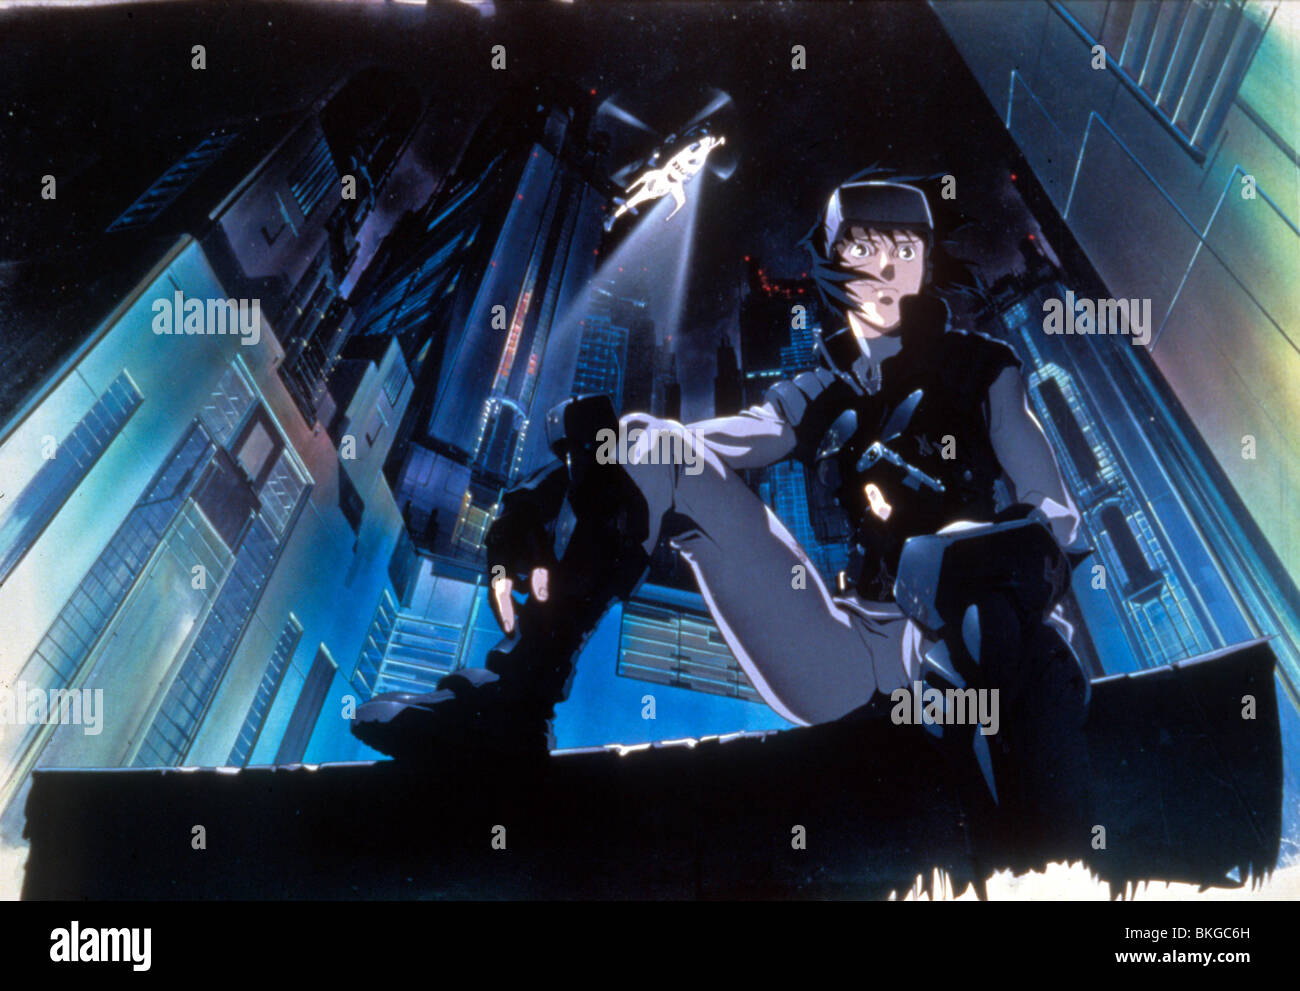 Ghost In The Shell 1995 Animation Gits 006 Stock Photo Alamy